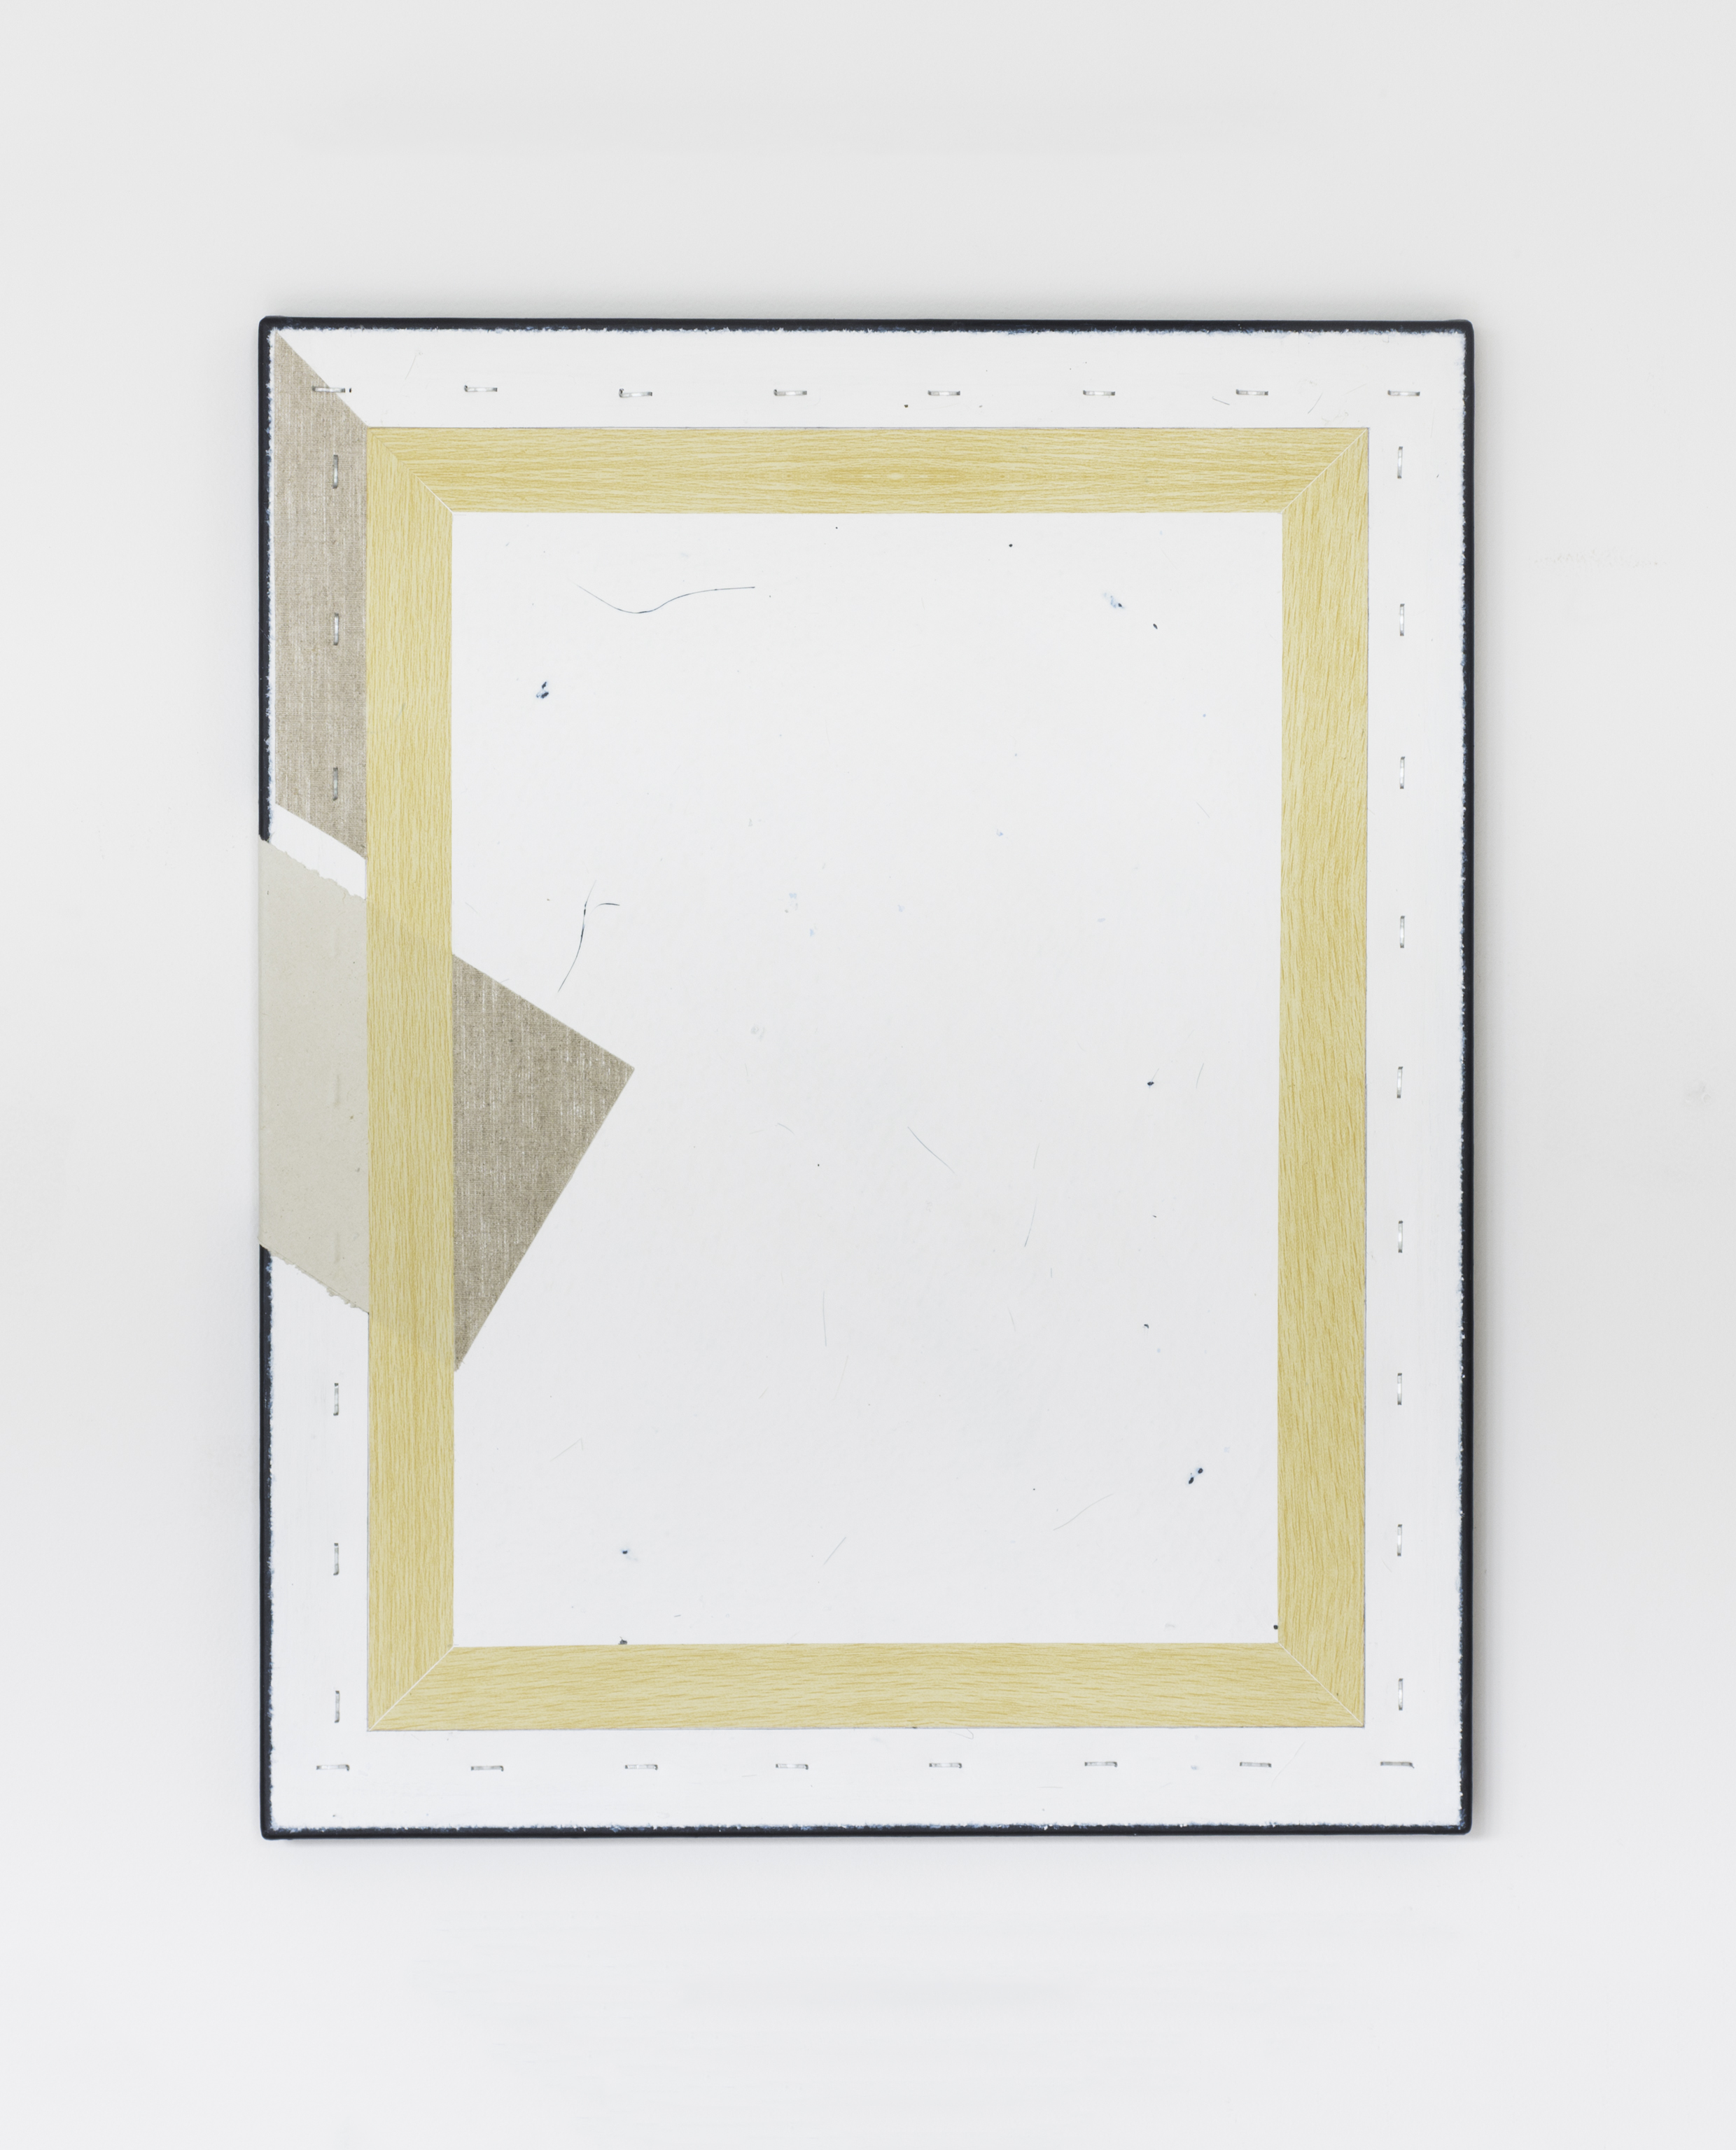 Painting No.9 2015 Awagami paper, vinyl wood adhesive, staples,paint, linen, stretcher frame 40 x 50 cm $5000 USD